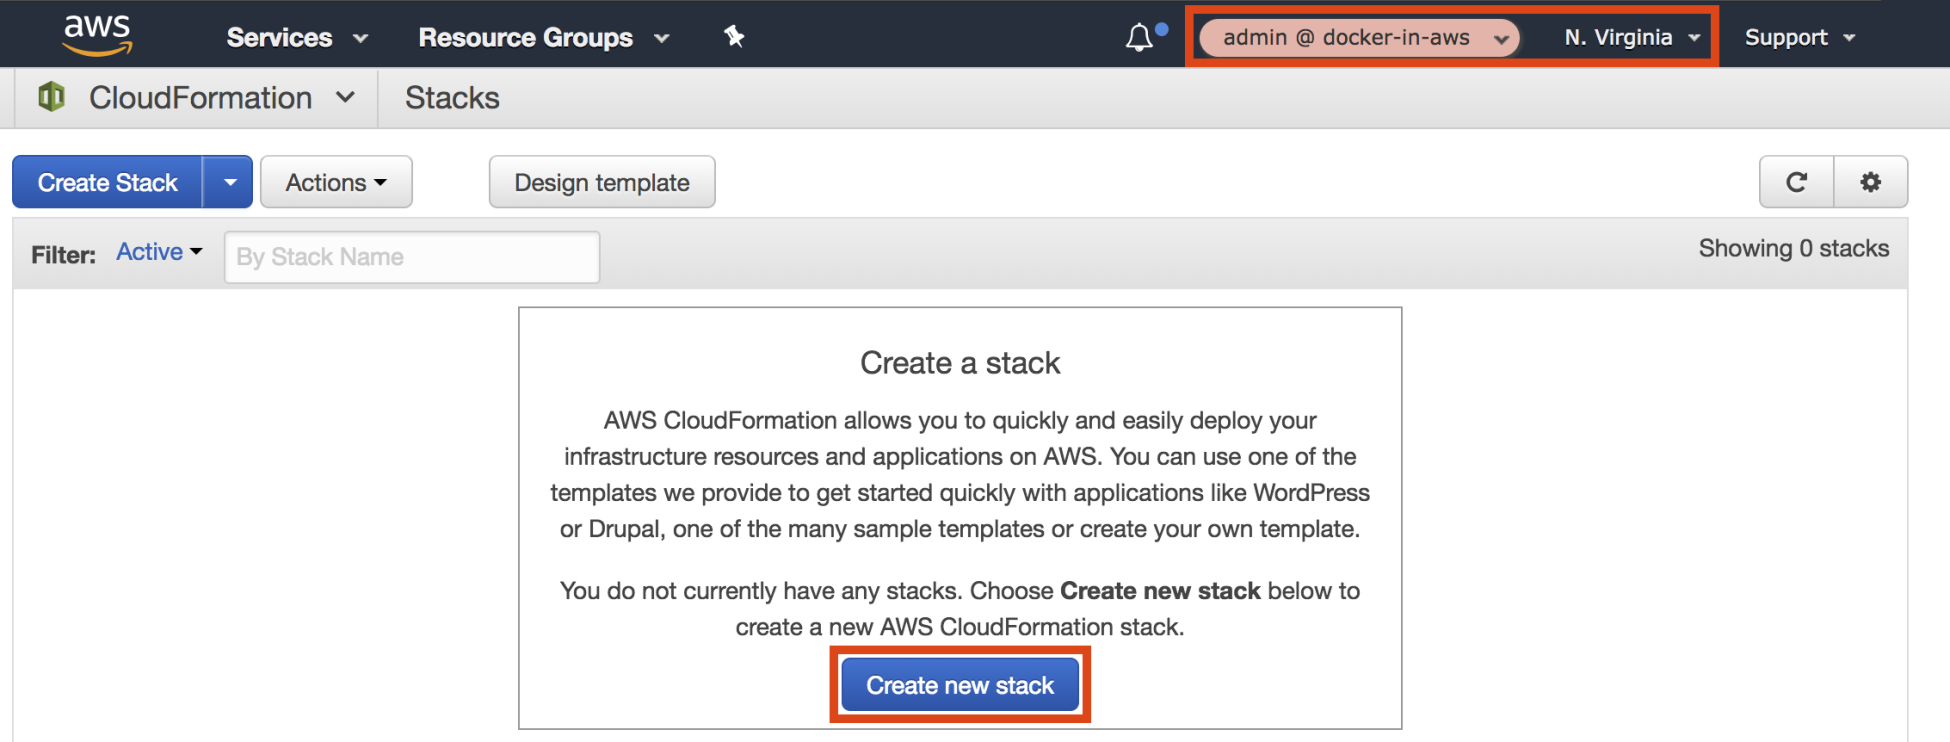 Deploying a CloudFormation stack - Docker on Amazon Web Services [Book]